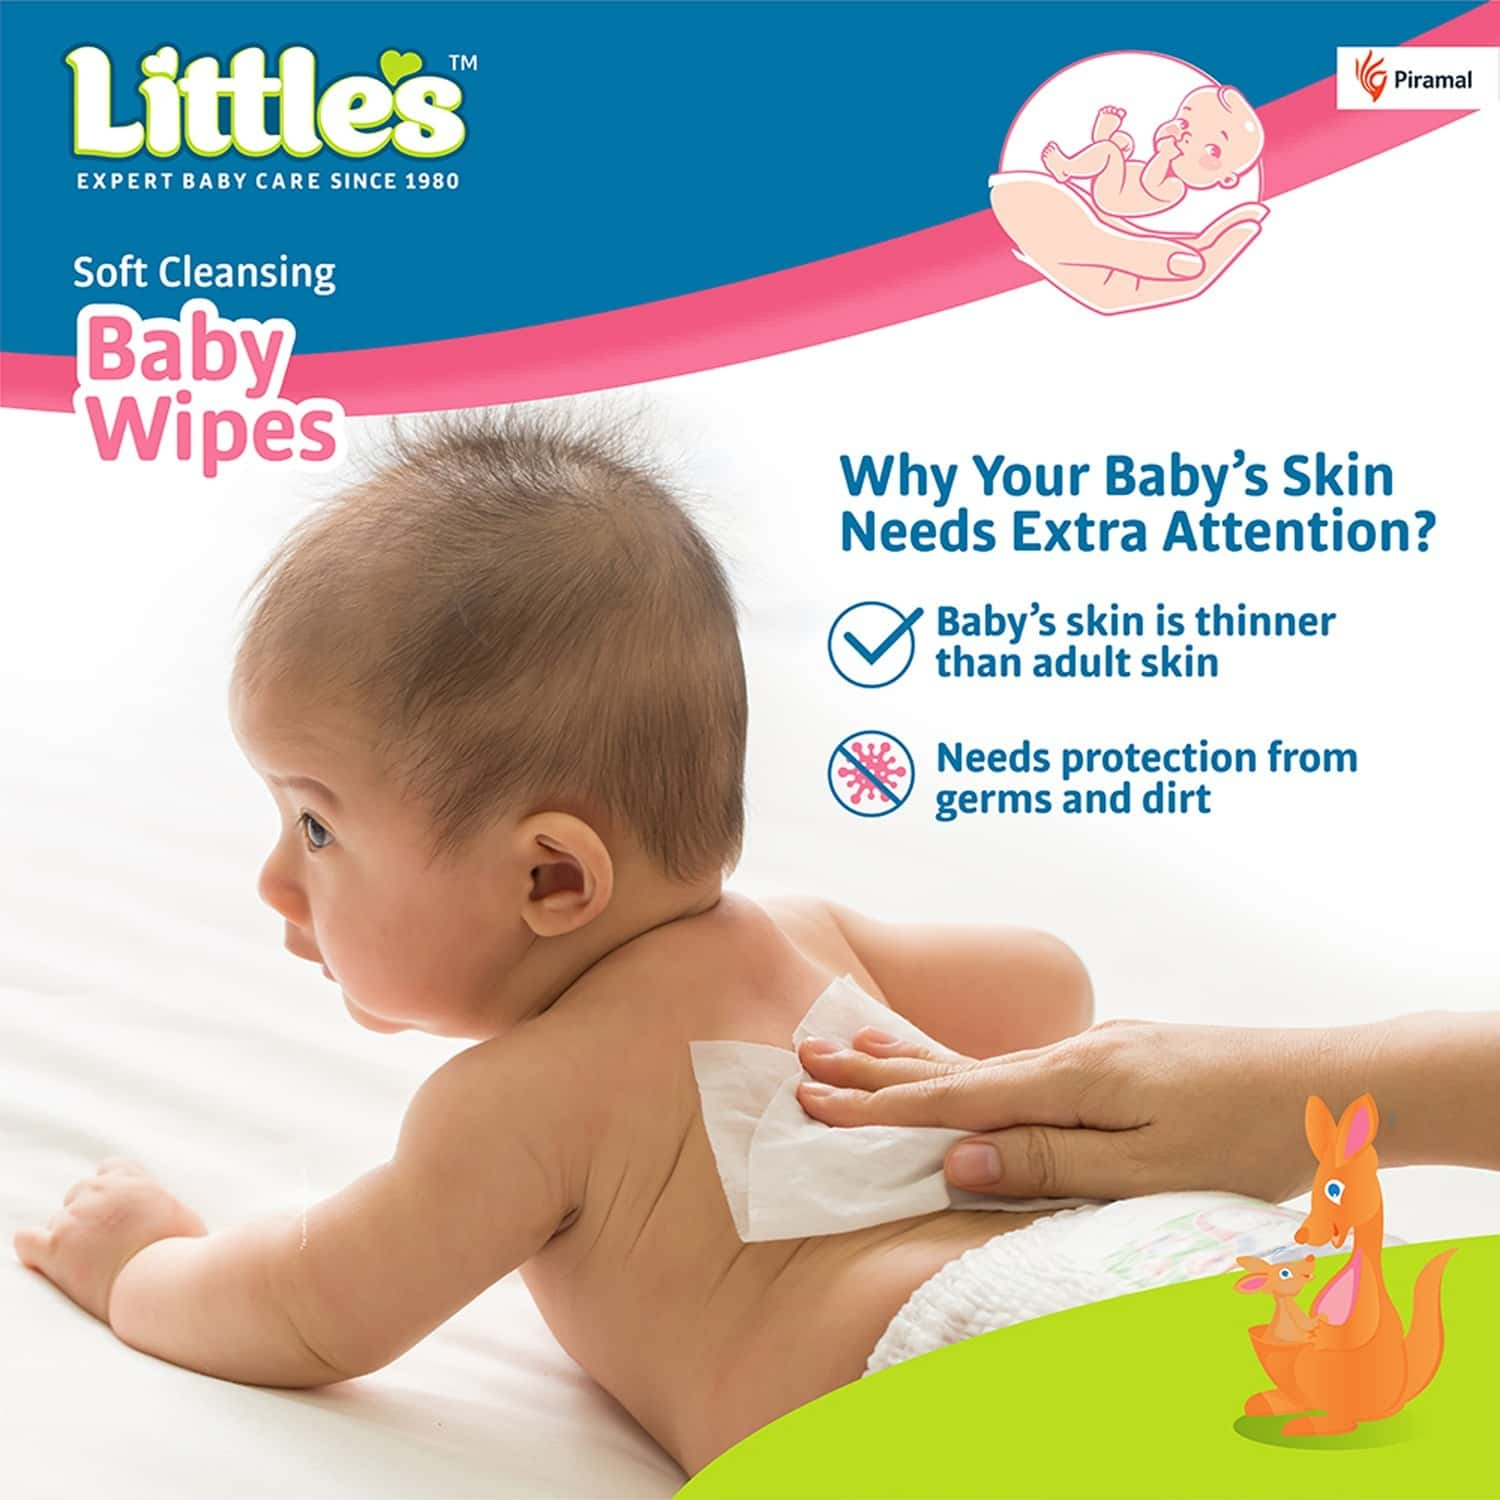 Little's Soft Cleansing Baby Wipes With Aloe Vera Jojoba Oil And Vitamin E - 80 Wipes